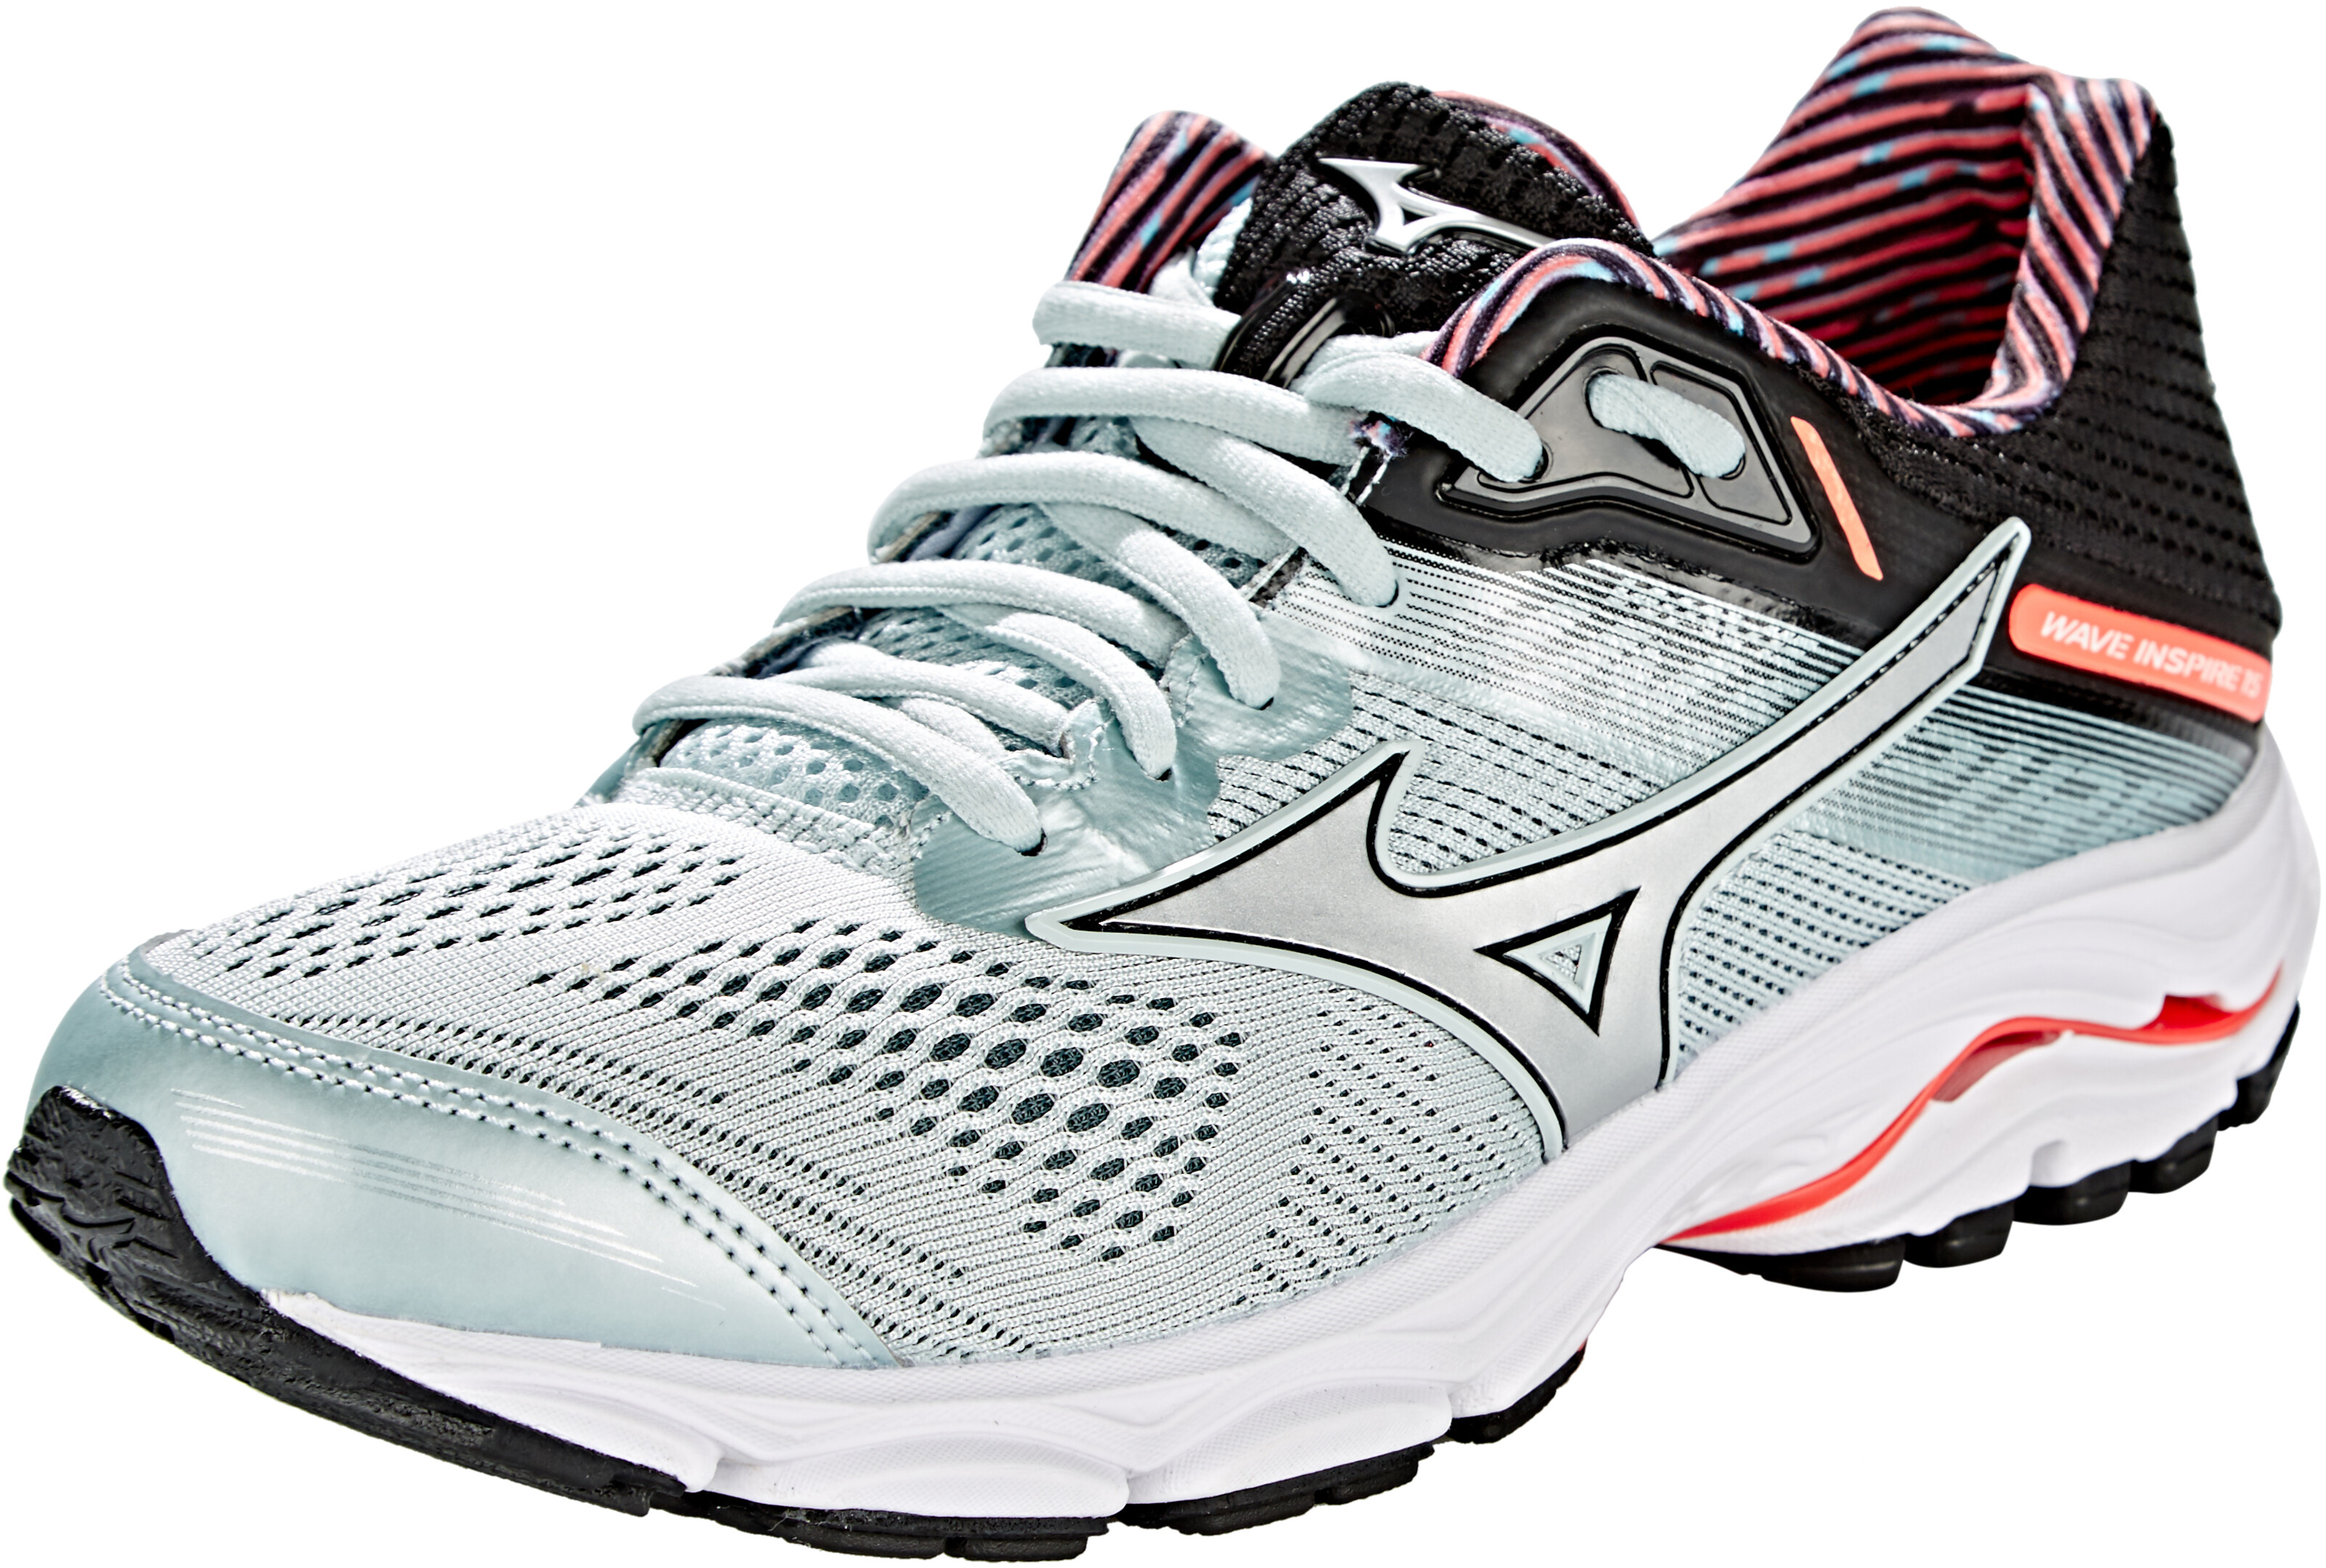 1807ce8d3ac8 Mizuno Wave Inspire 15 Running Shoes Women grey at Bikester.co.uk